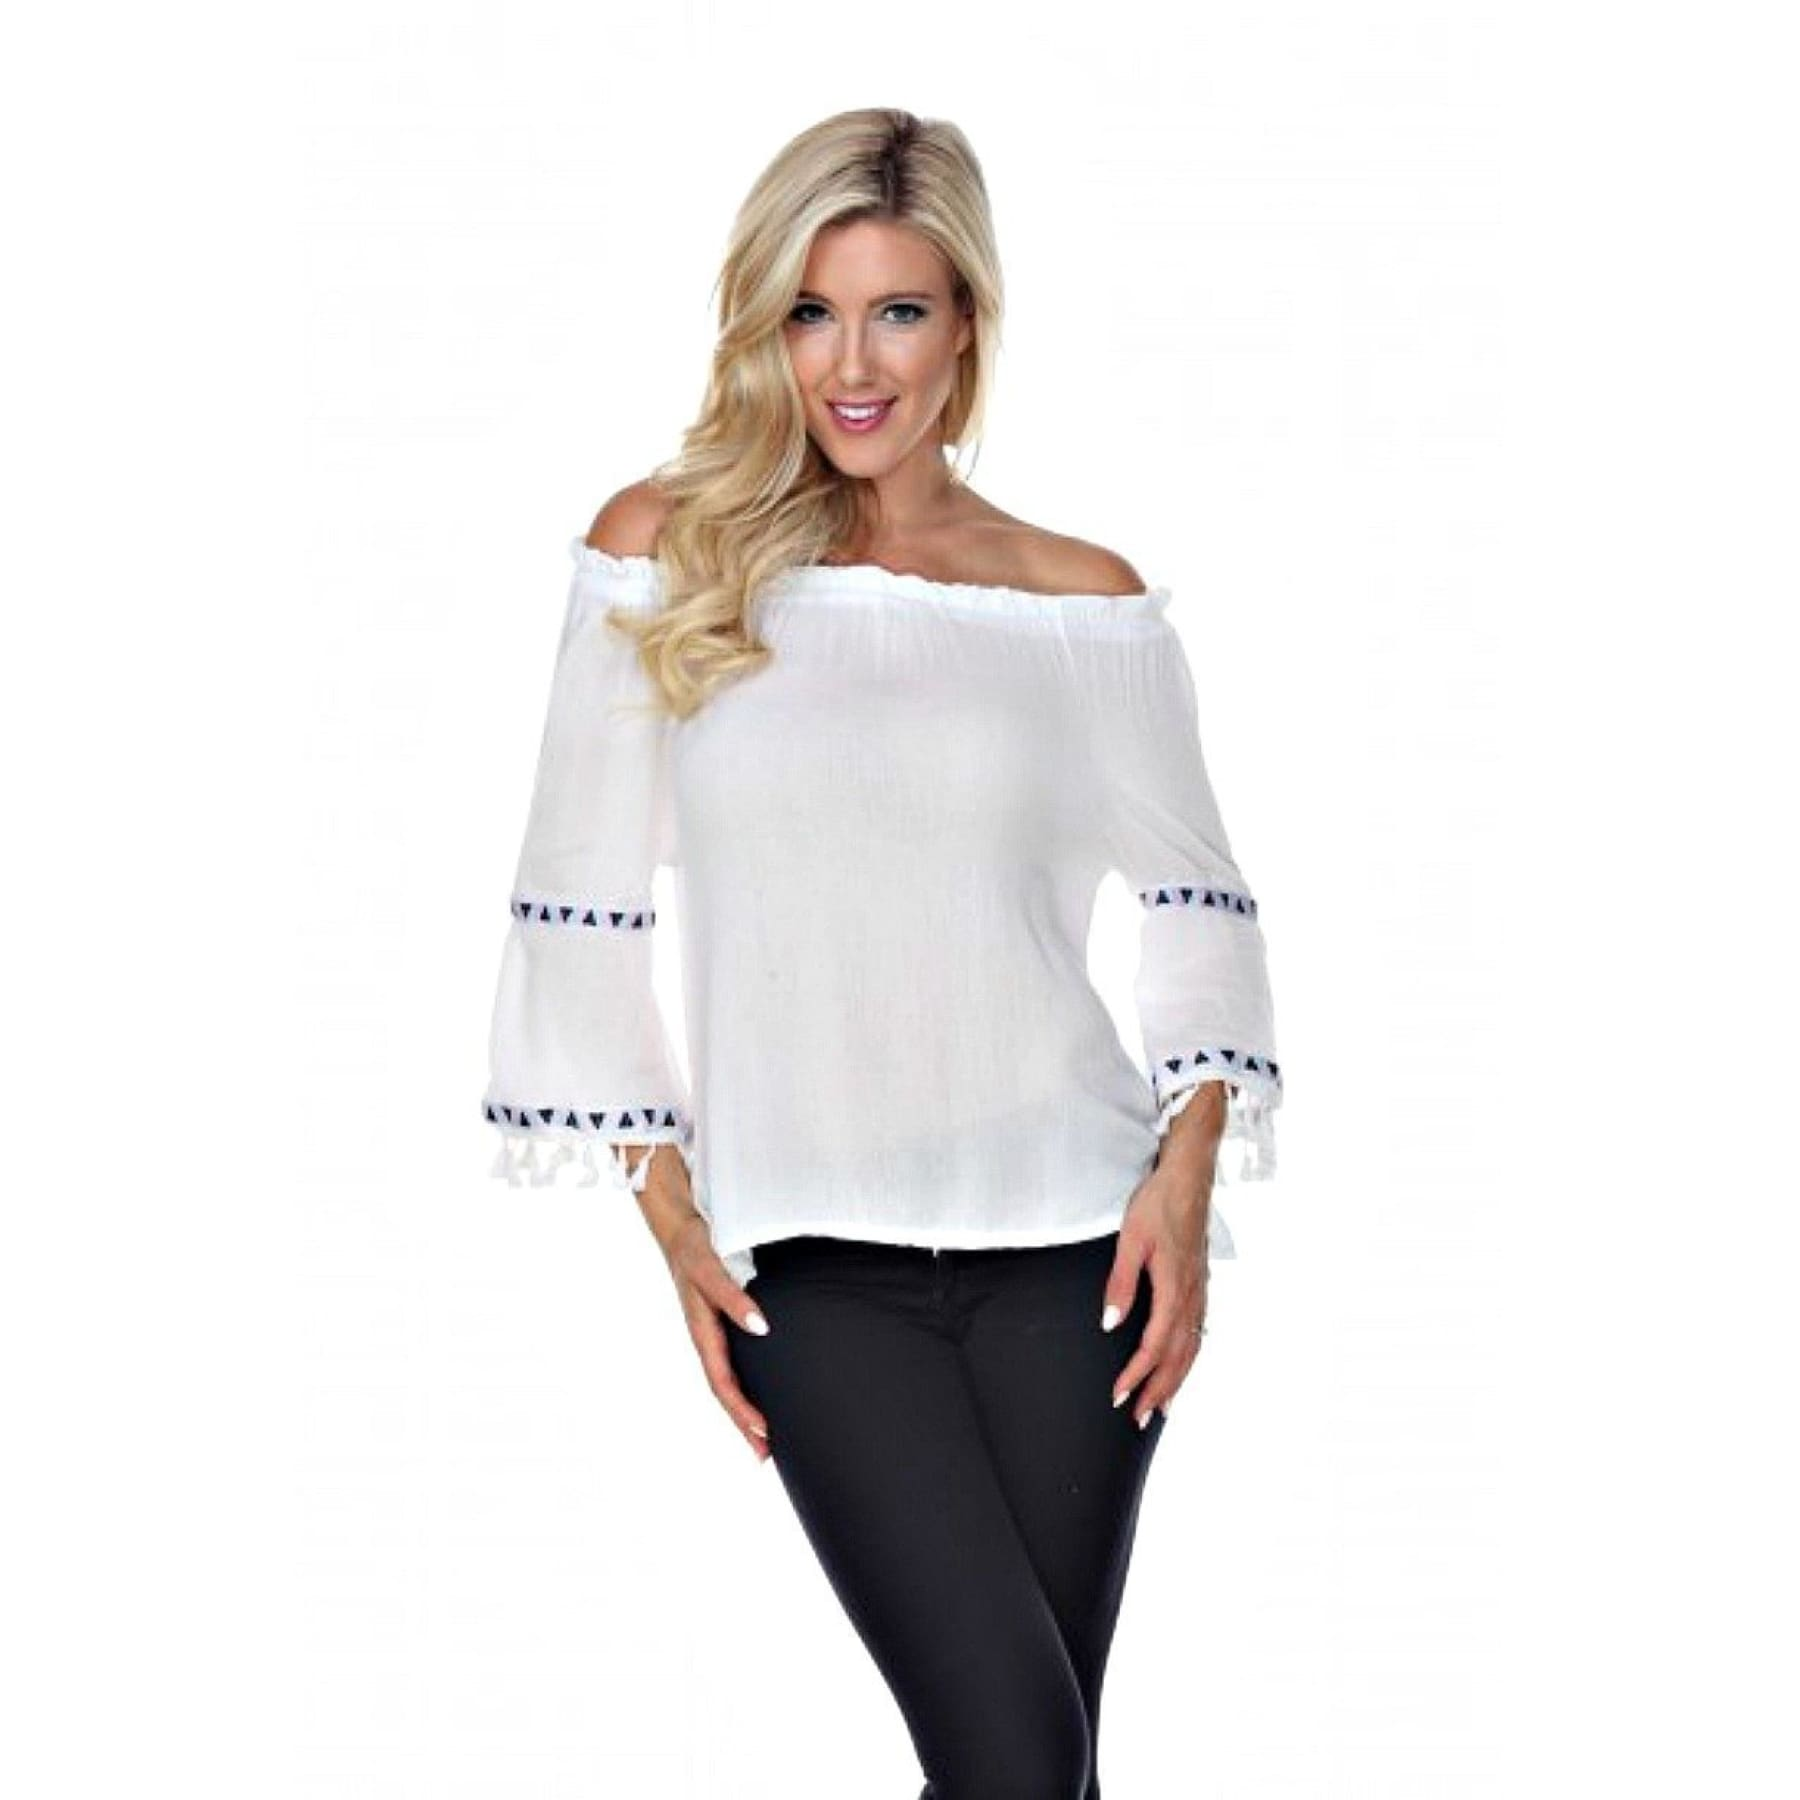 Fringe Benefits Off the Shoulder Top ~ 4 Colors - S / White